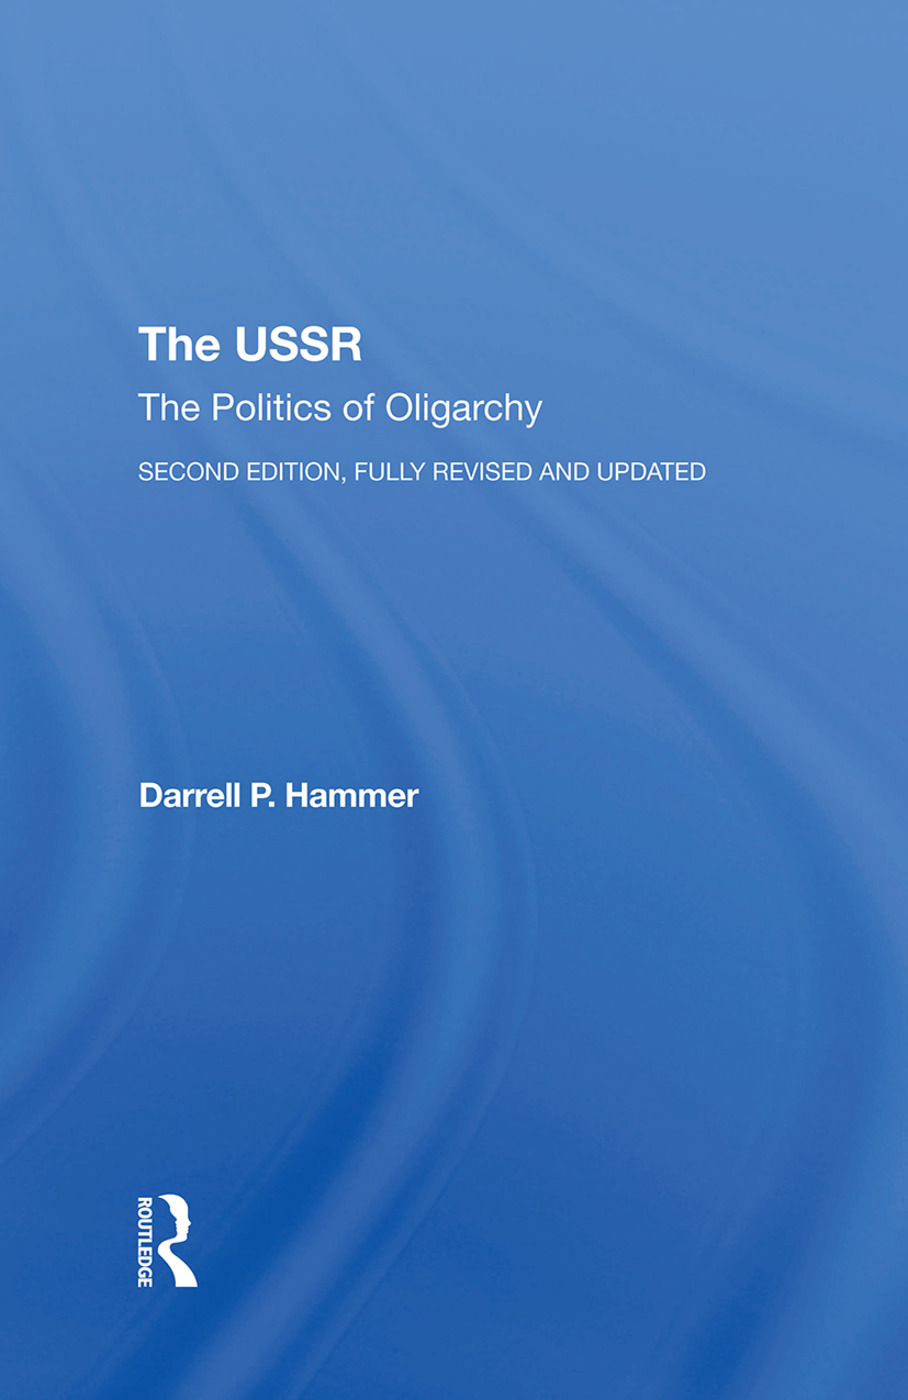 The Ussr: The Politics Of Oligarchy, Second Edition, Fully Revised And Updated book cover